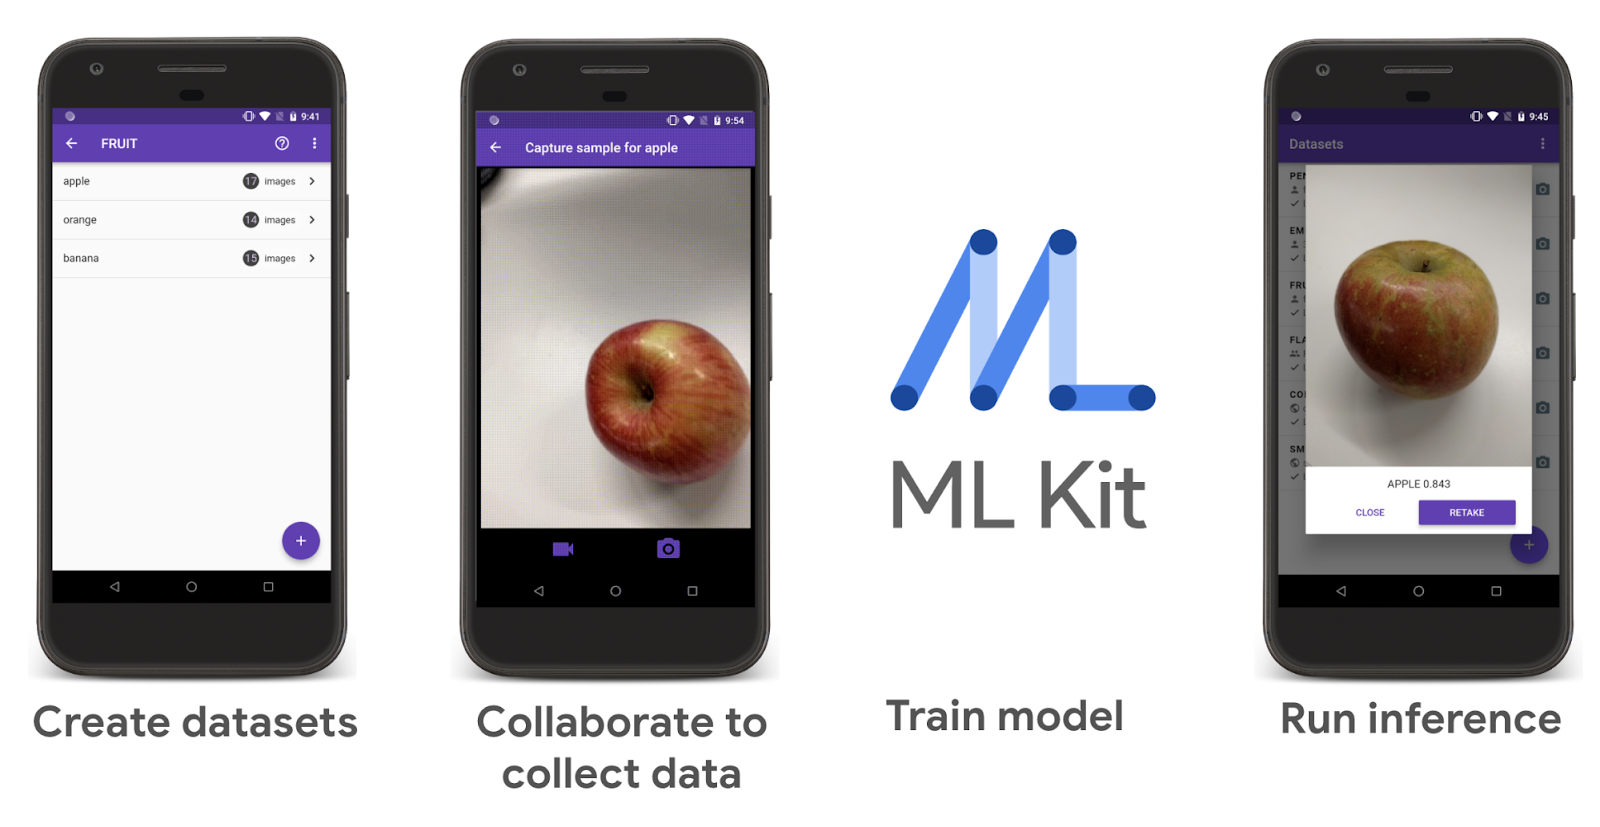 Flutter ML Kit: create datasets, collaborate to collect data, train model, run inference